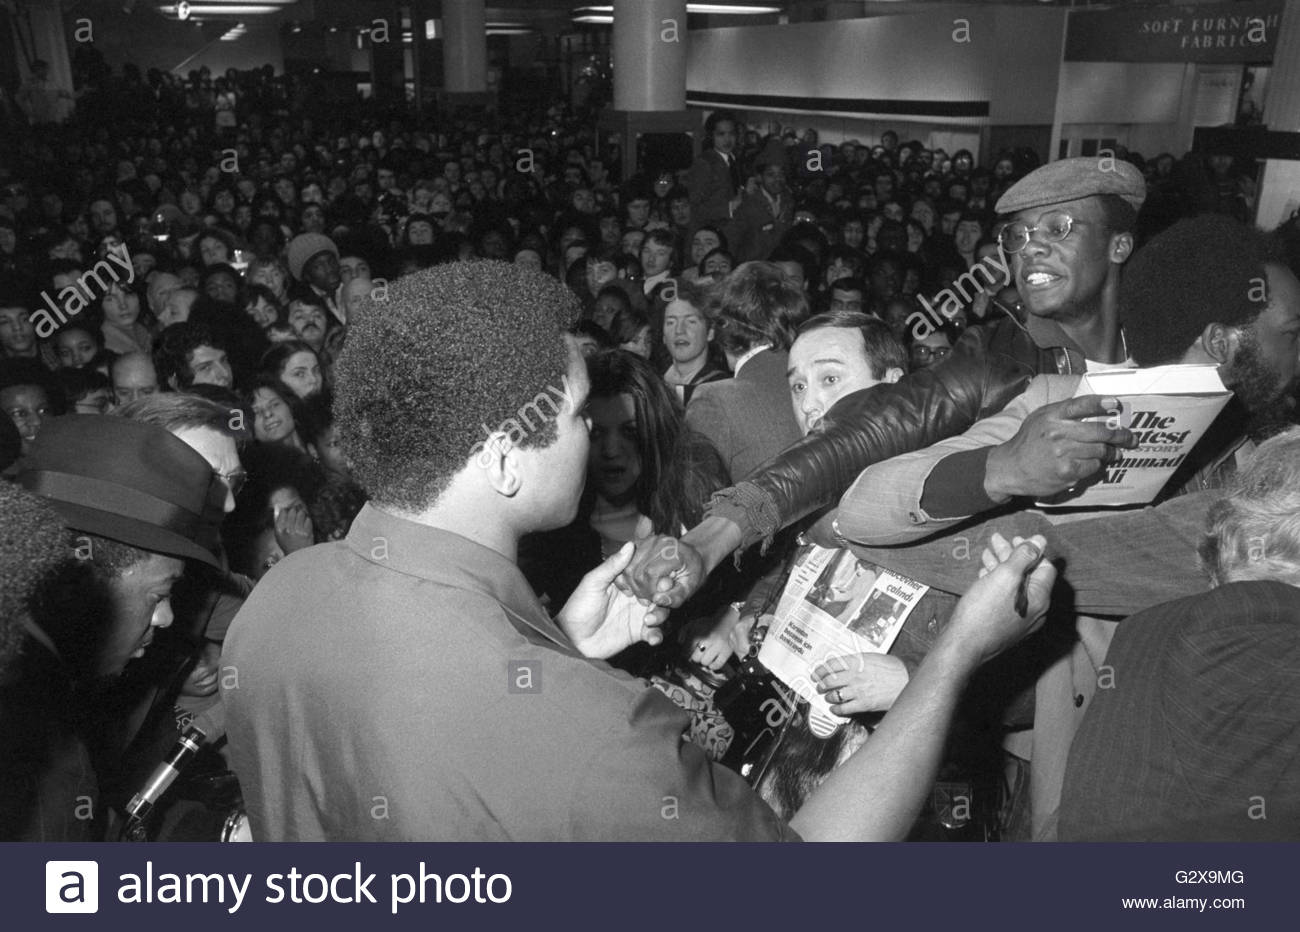 File photo dated 11-03-1976 of Pandemonium breaks out in the Menswear department at Selfridges store in Oxford Street, - Stock Image